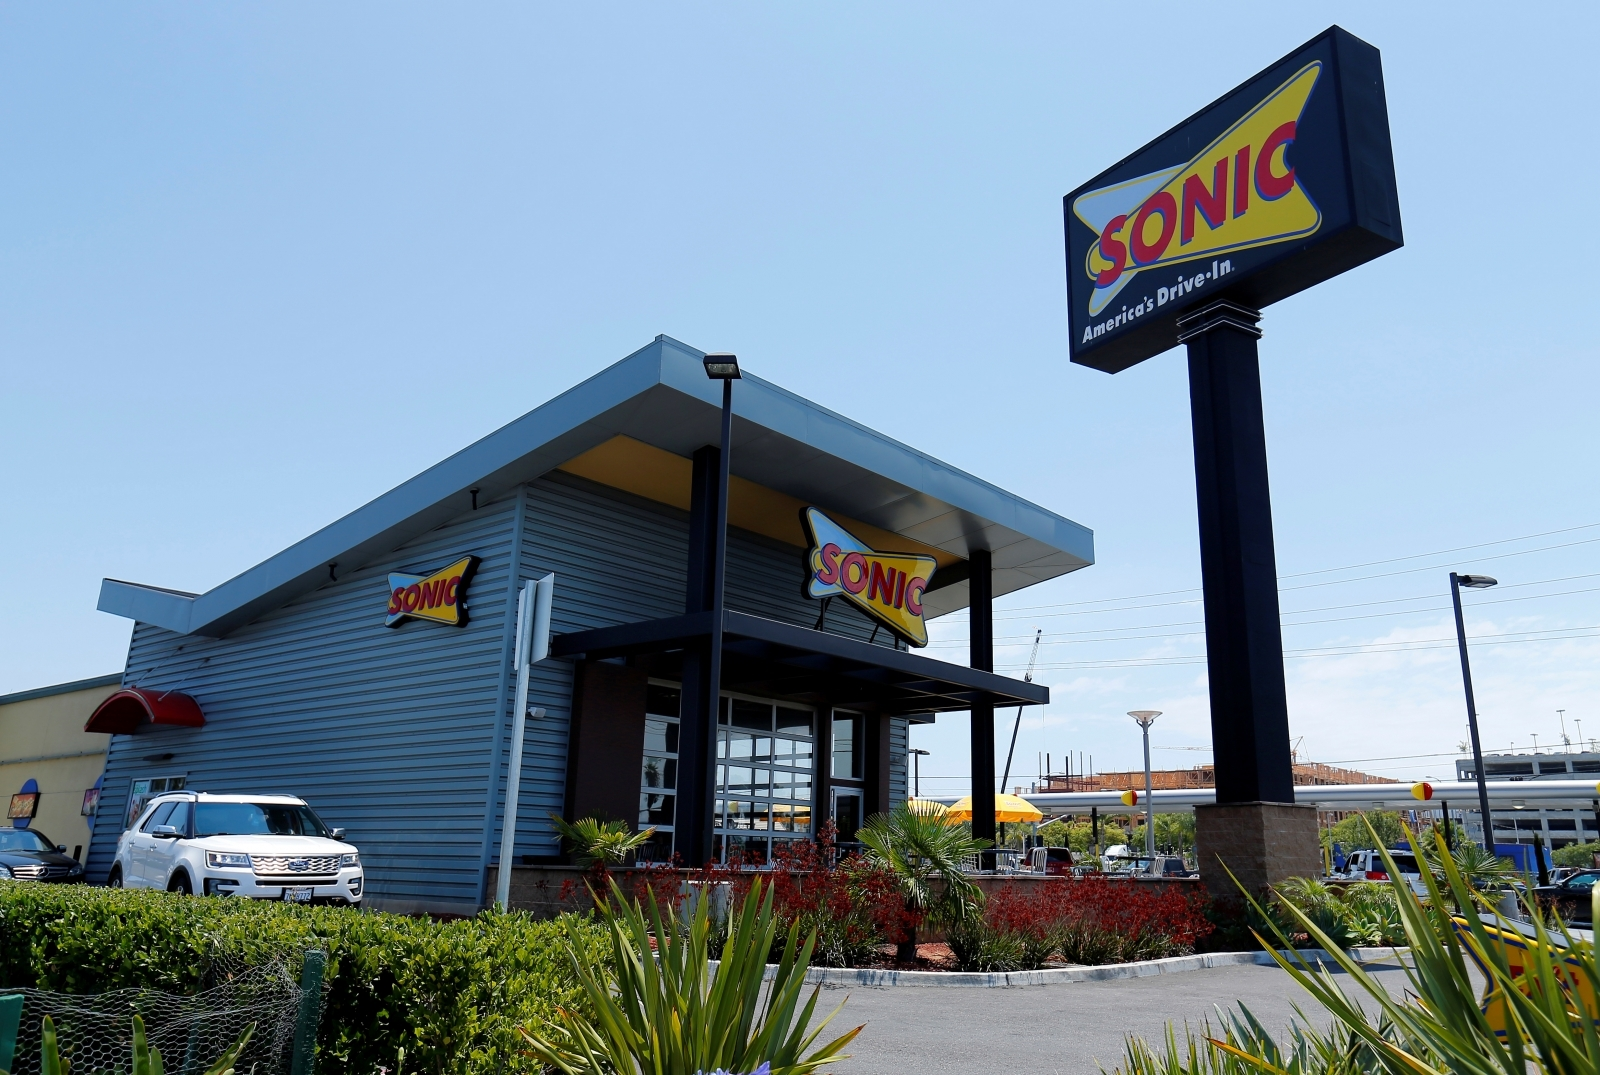 Sonic Drive-In Confirms Data Breach; 'Unusual Activity' On Customer Cards